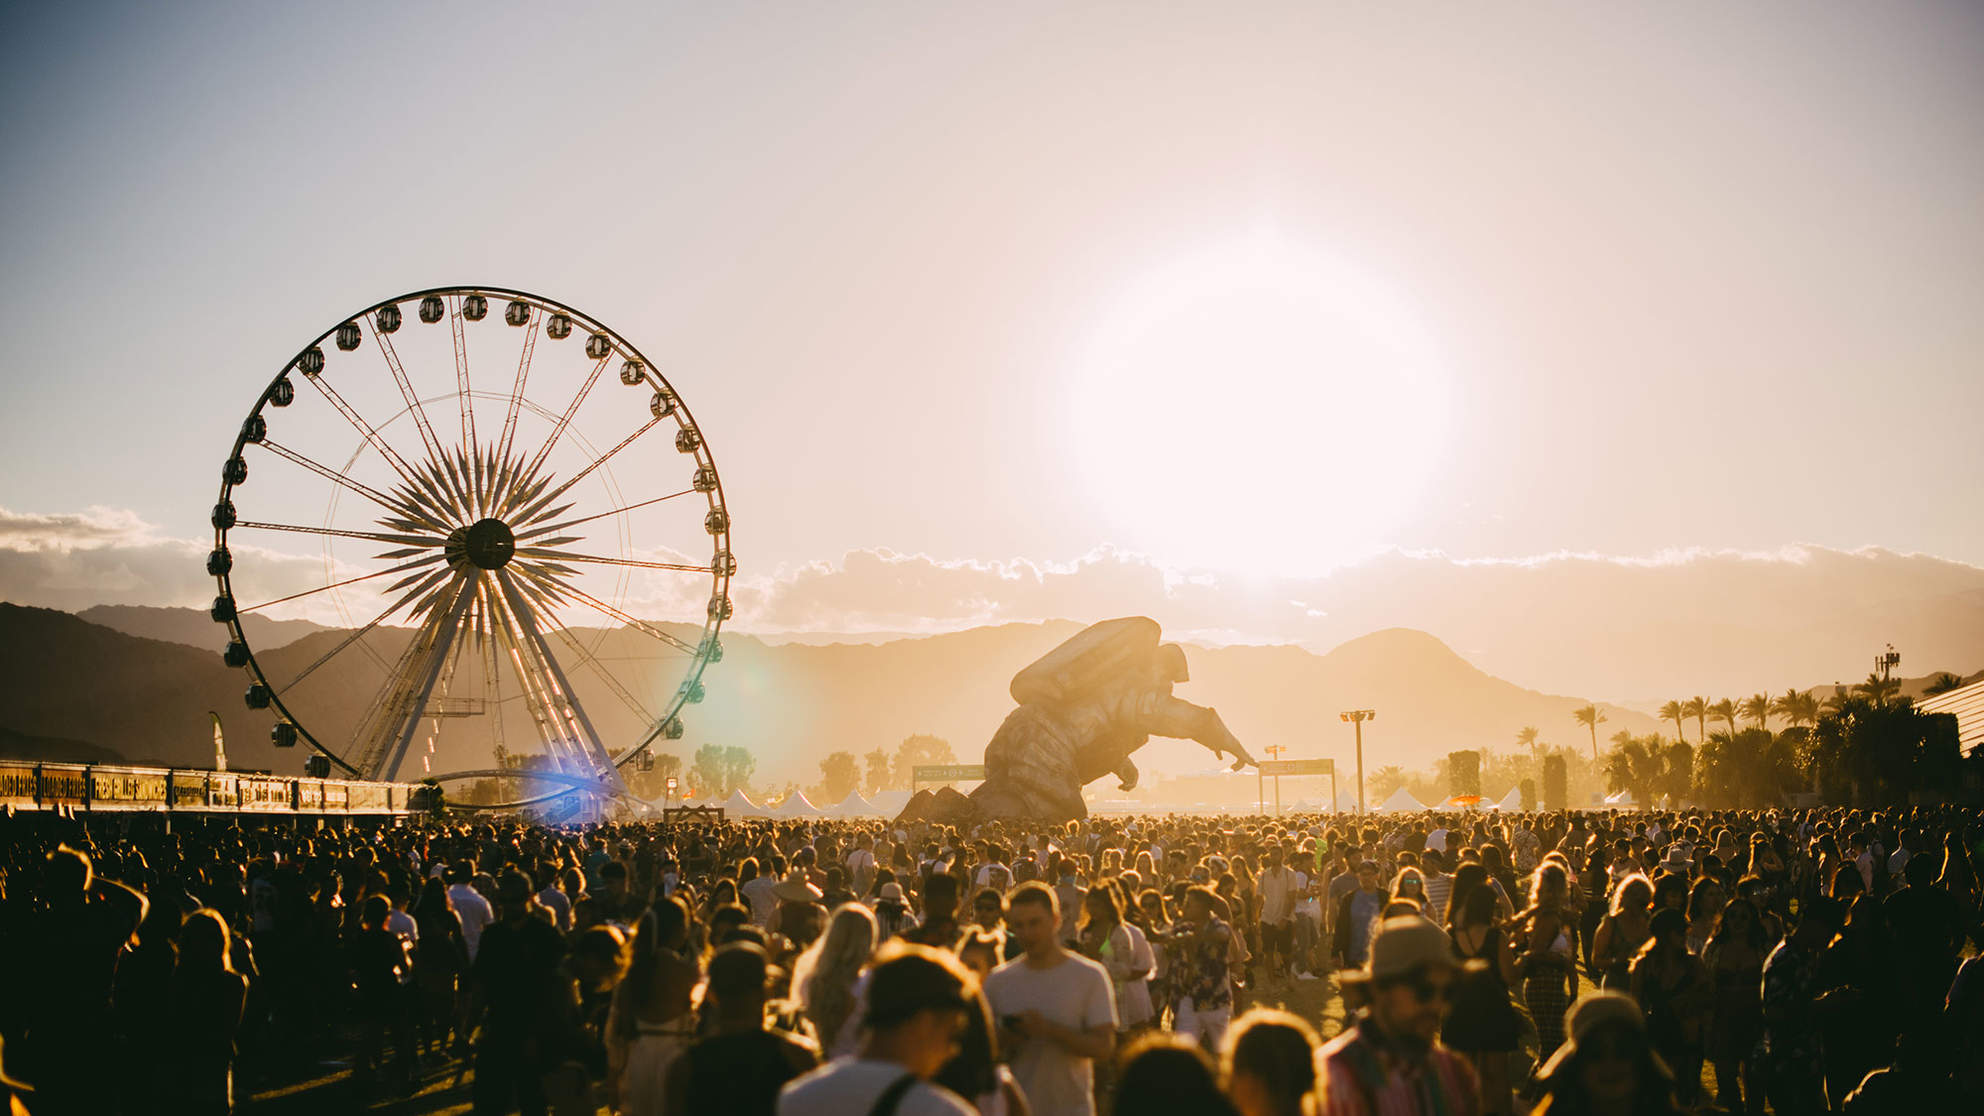 Herpes Cases Reportedly Skyrocketed at Coachella This Year